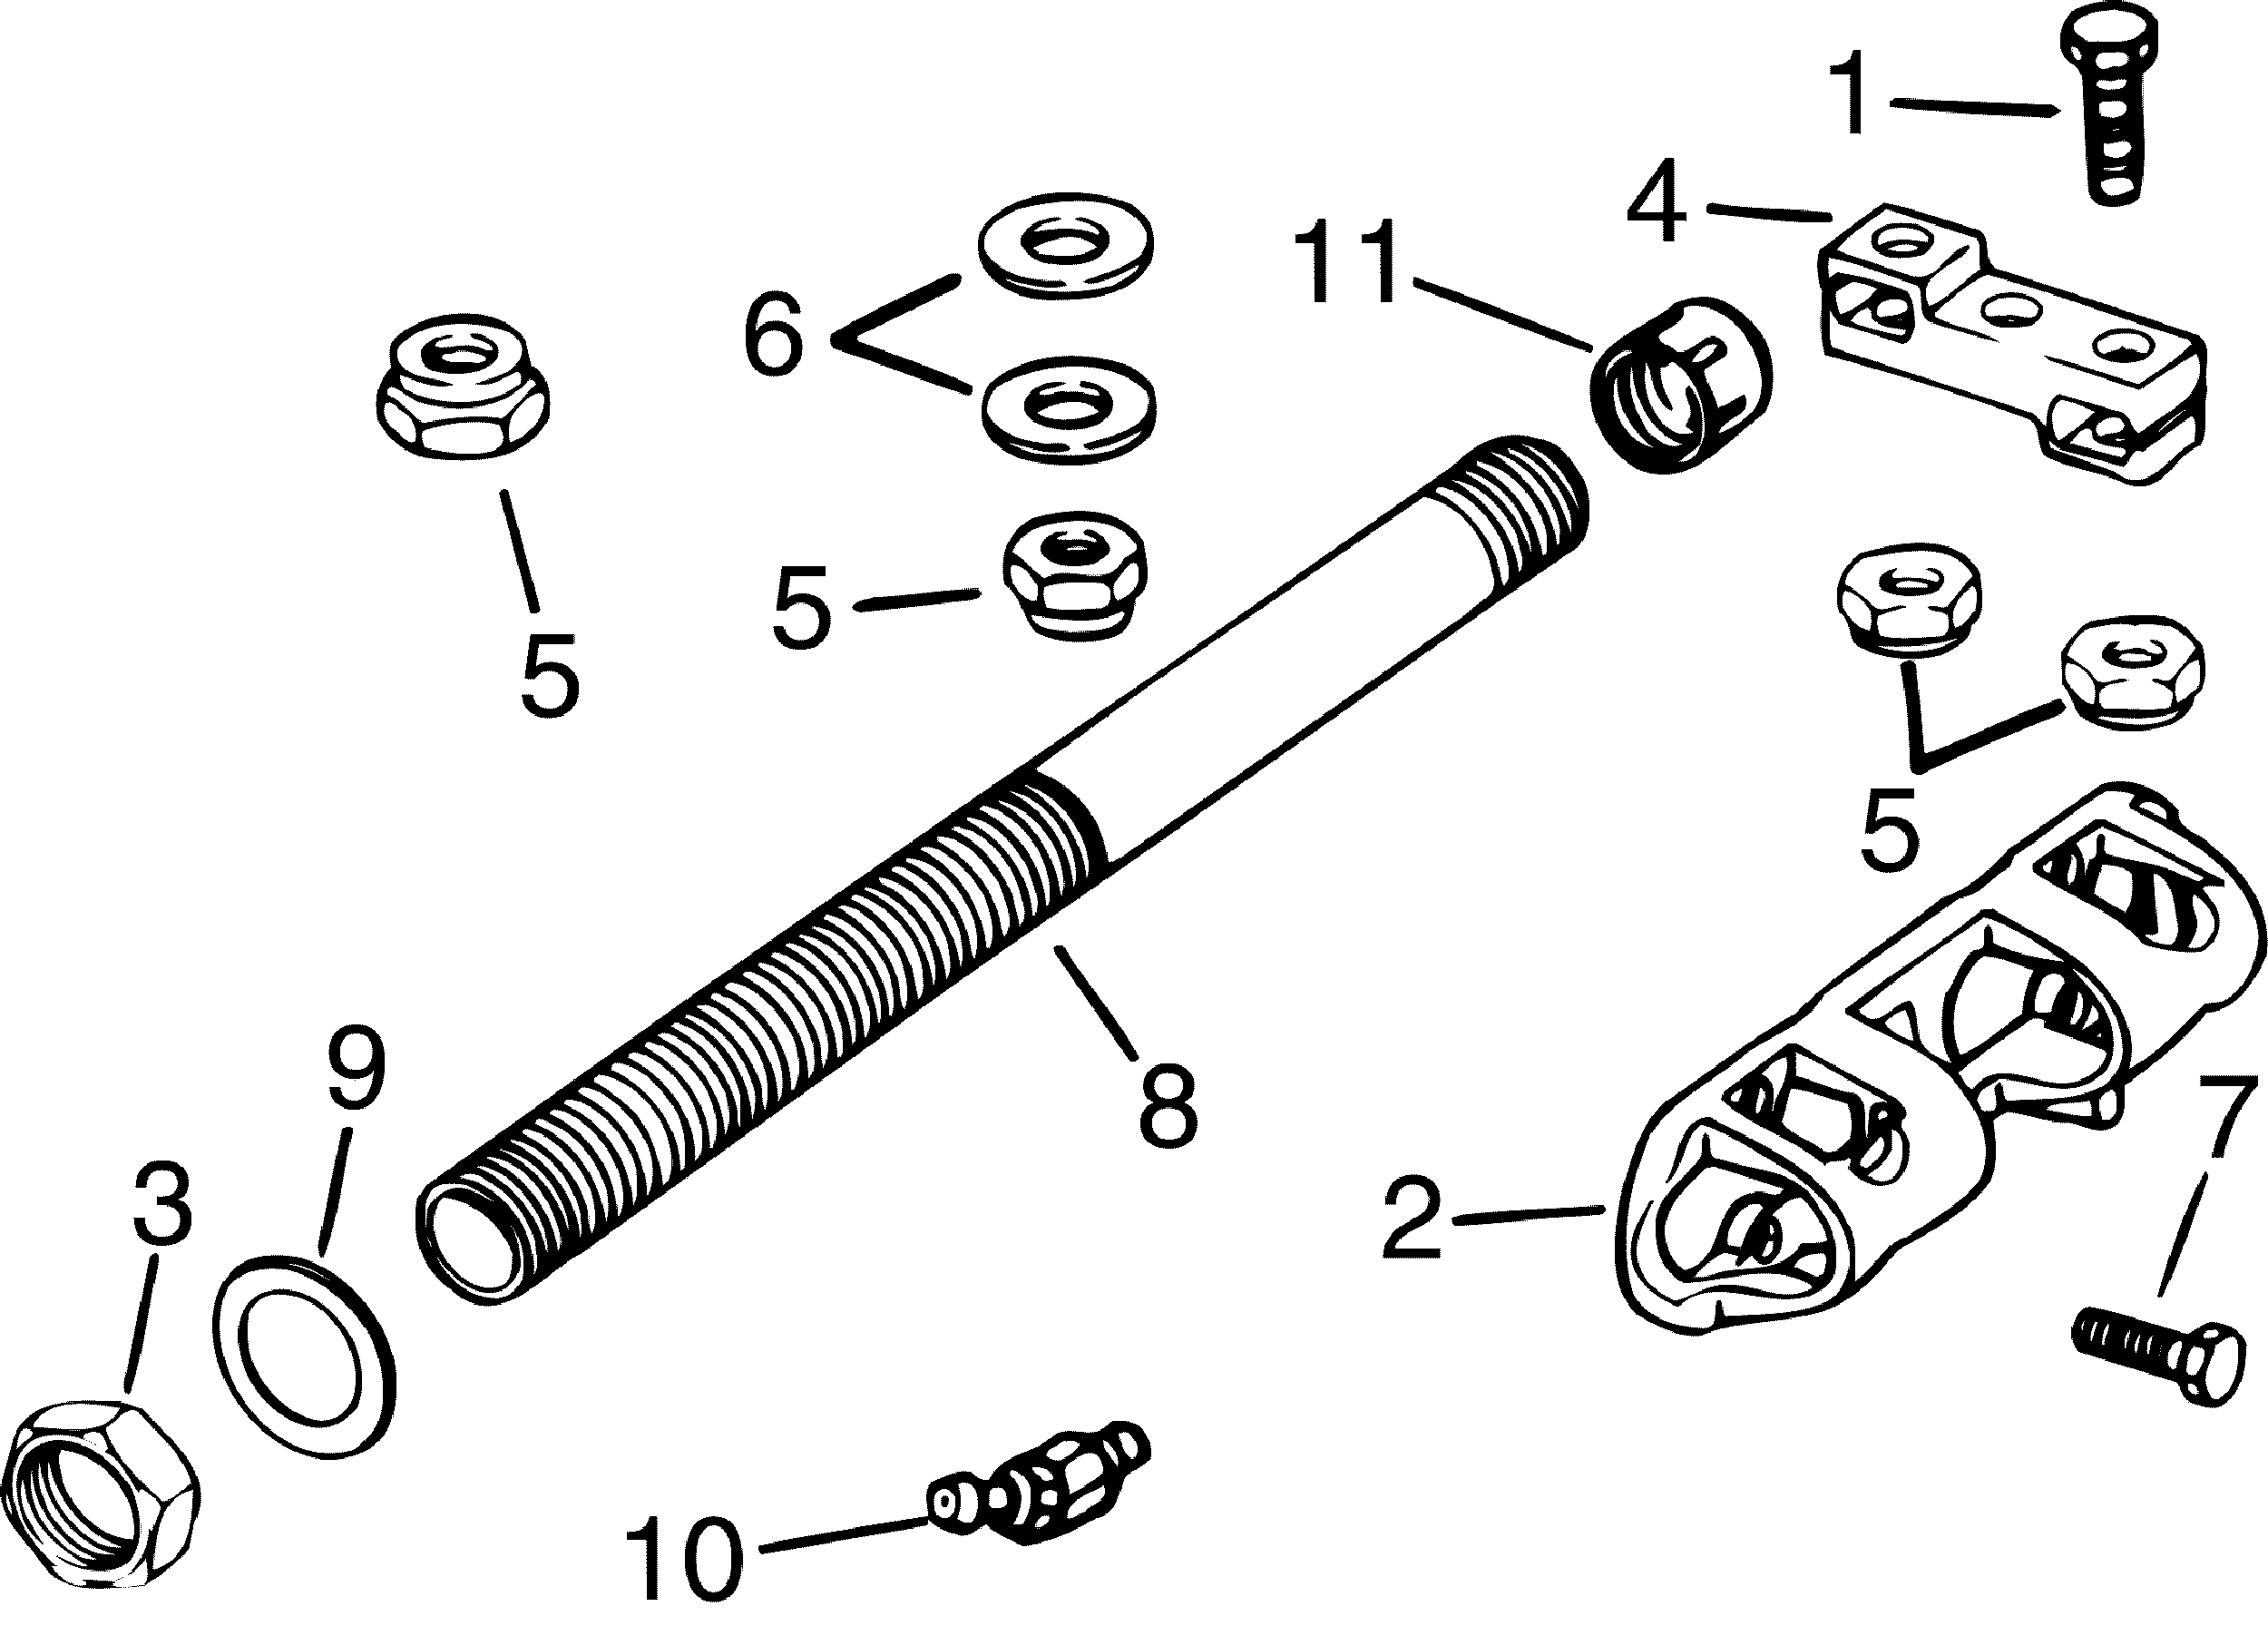 seastar hydraulic steering parts diagram t5 ho ballast wiring outboard motor cable impremedia